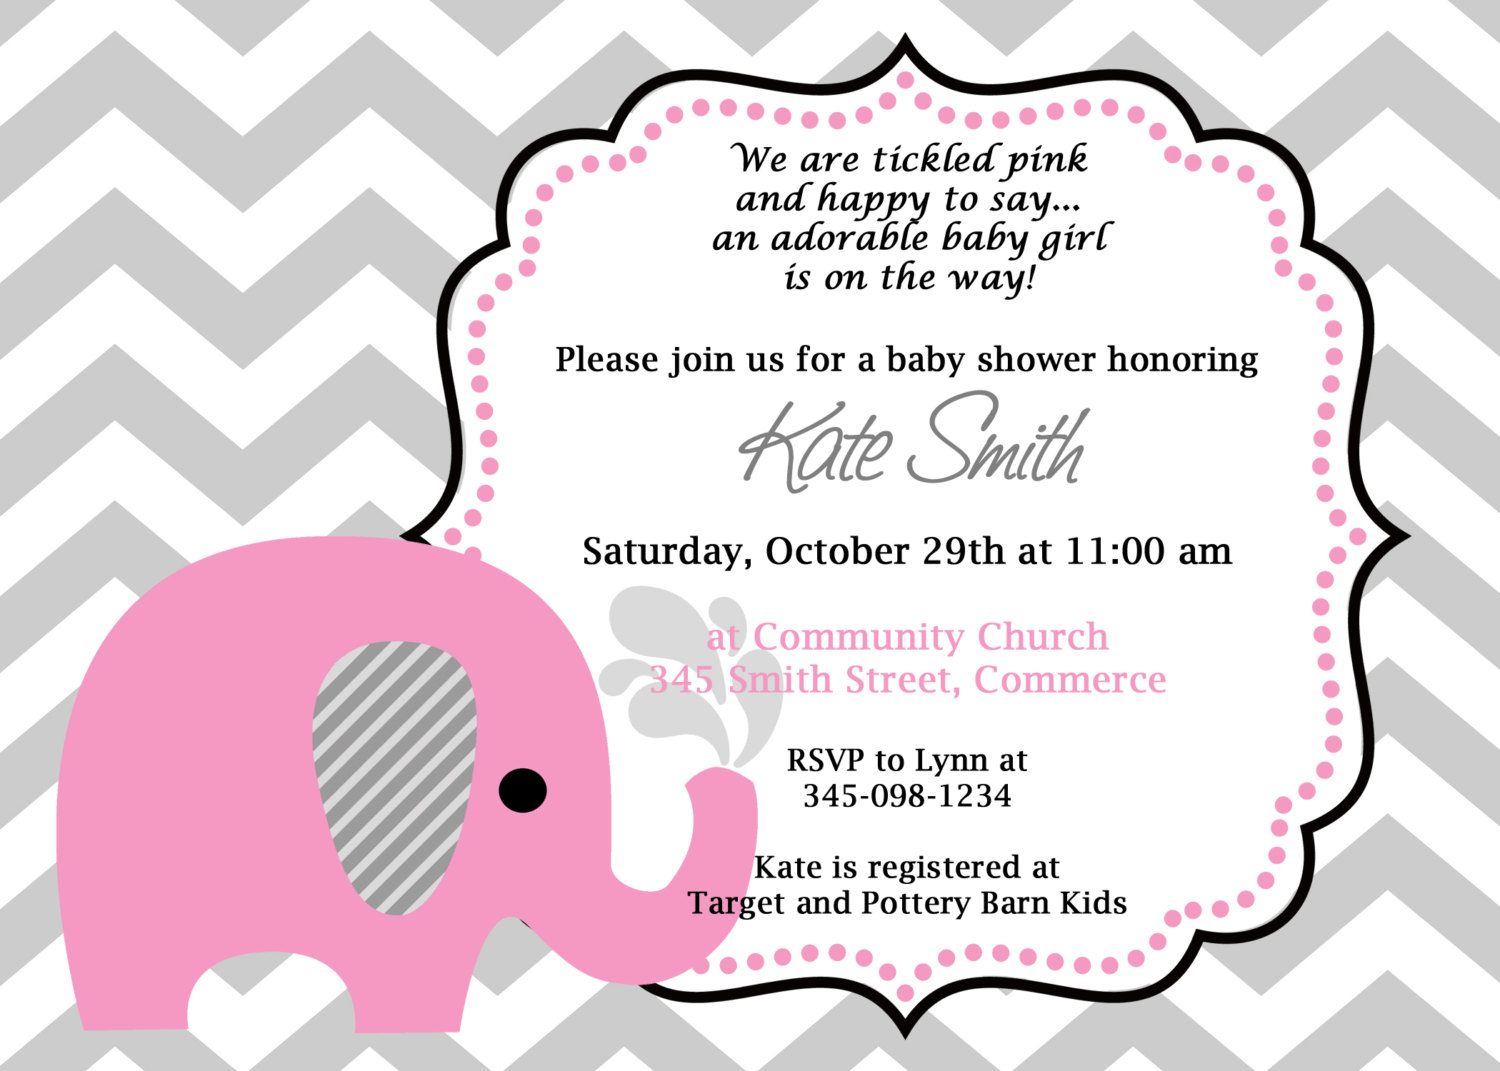 Full Size of Baby Shower:delightful Baby Shower Invitation Wording Picture Designs Arreglos Baby Shower Niño Baby Shower Hampers Baby Shower Snapchat Filter Ideas Para Baby Showers Baby Shower Wishing Well Baby Shower Notes